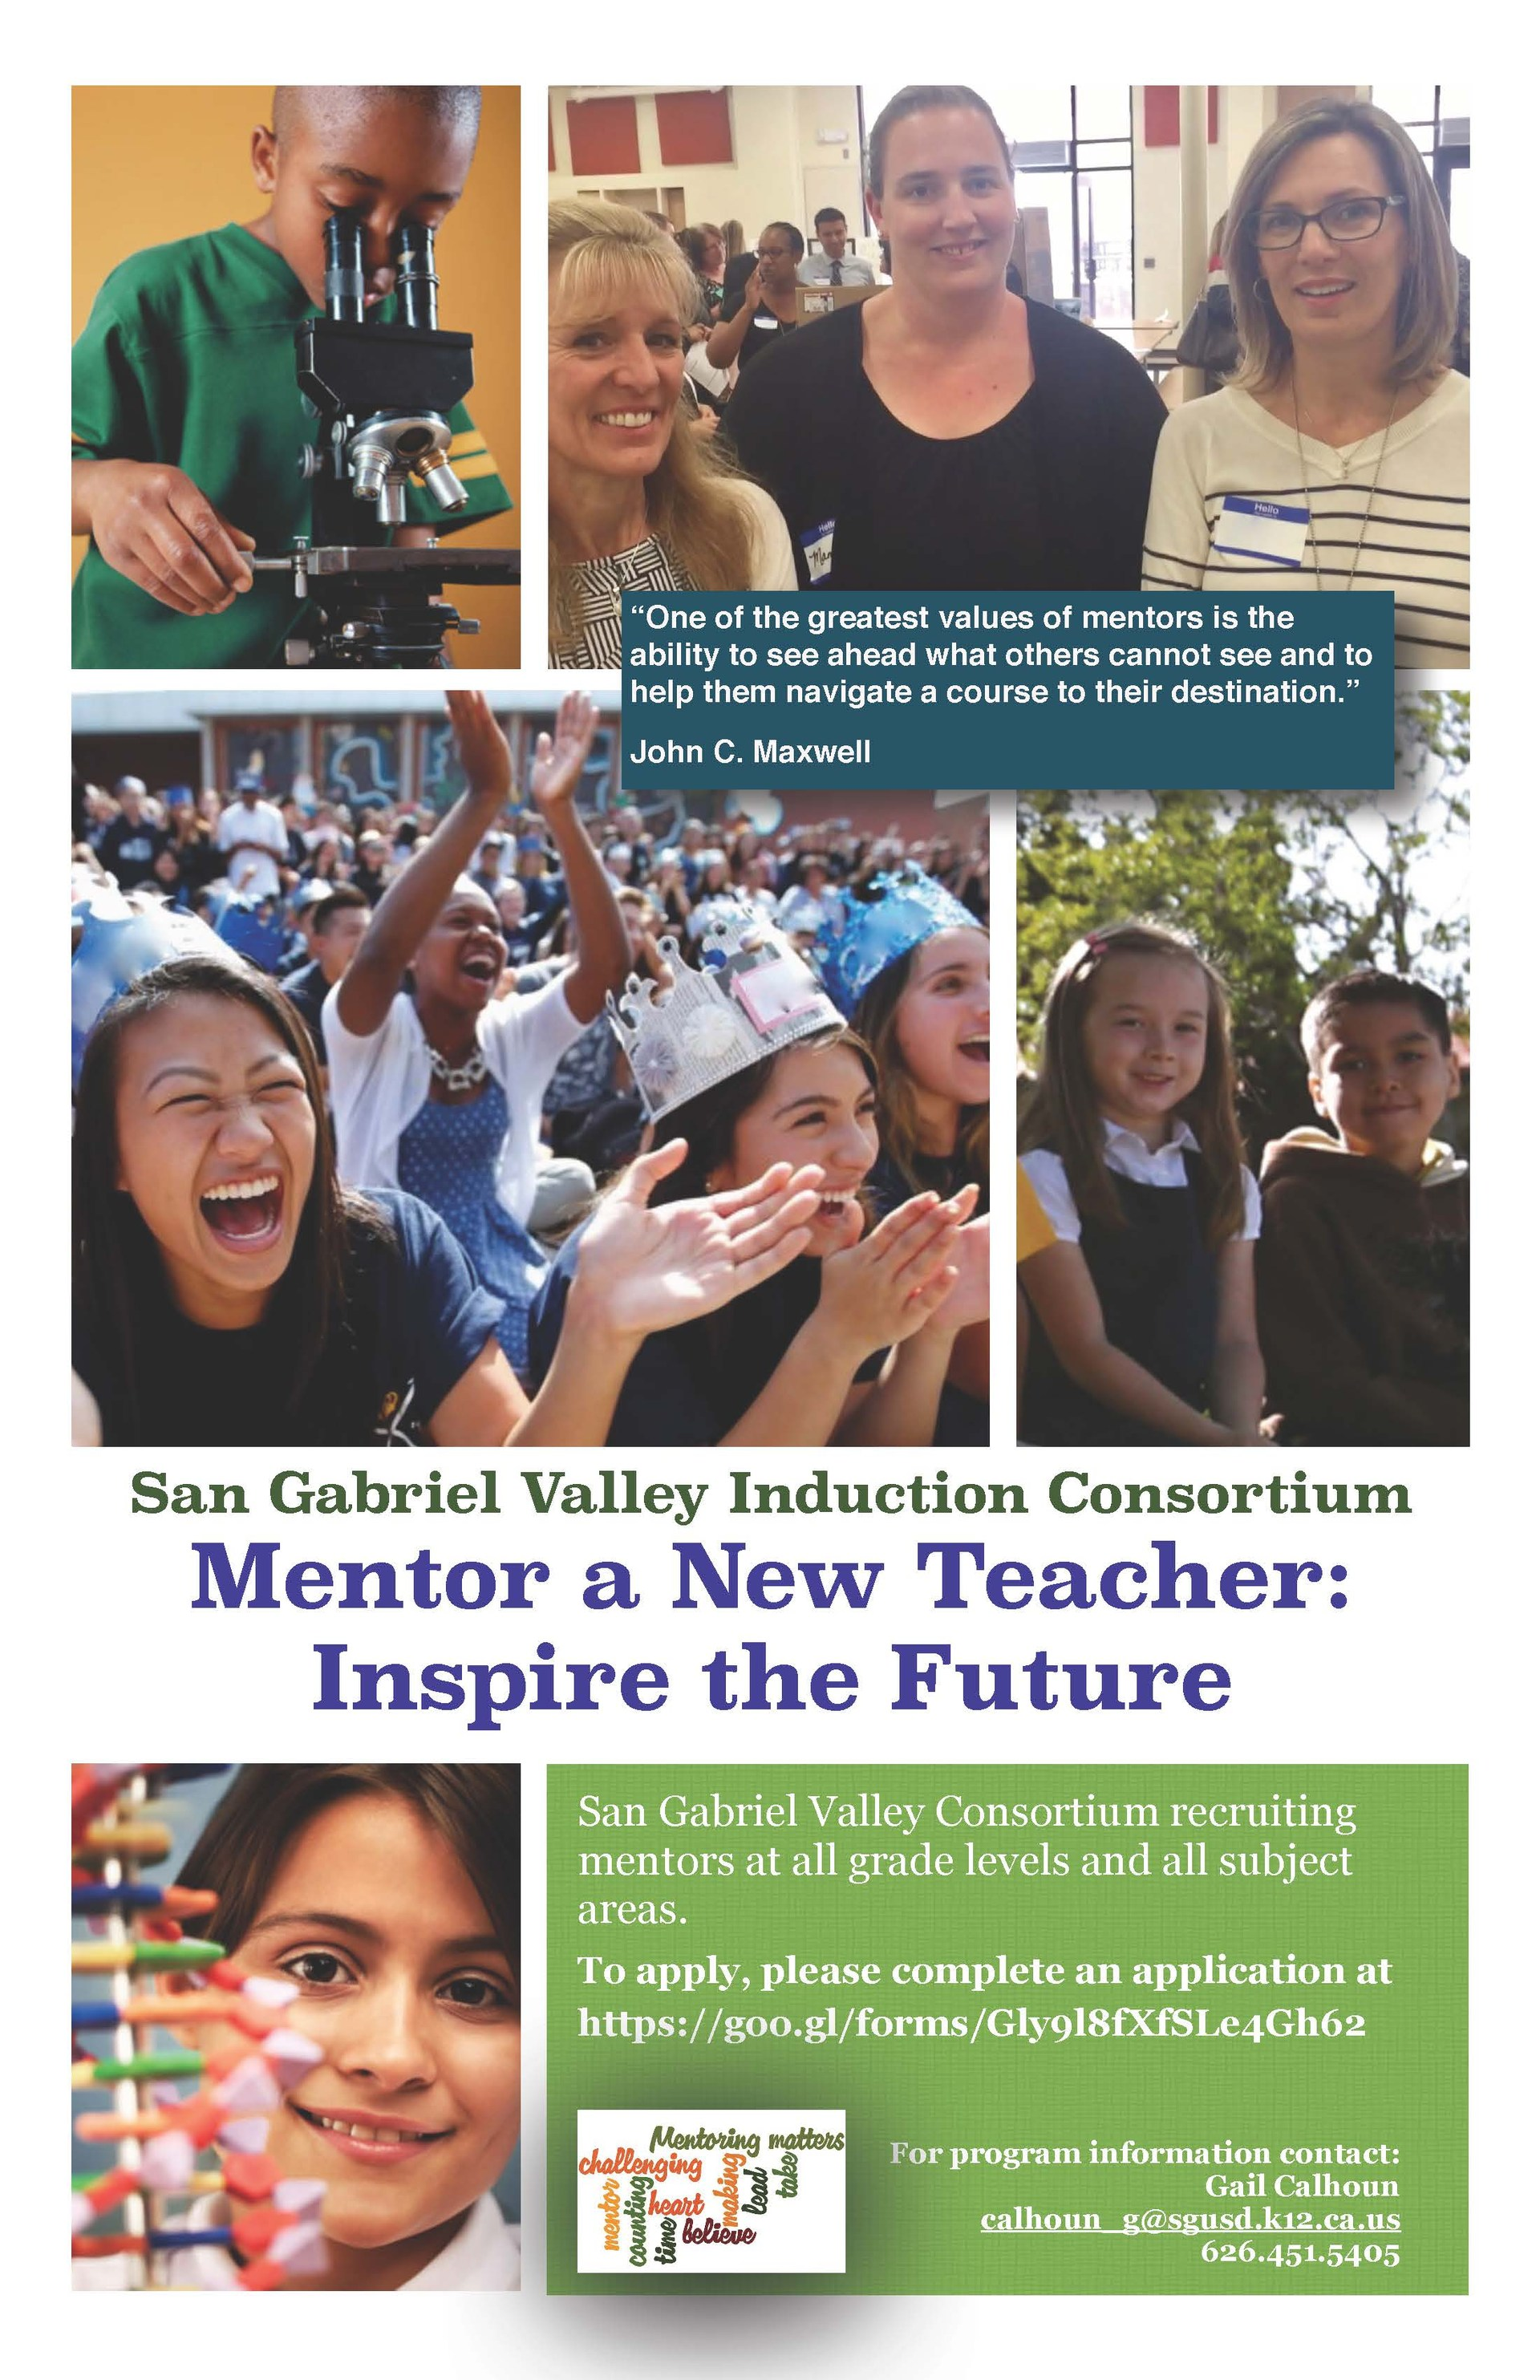 Flyer for Mentor Teacher Program. Images of students and teachers sitting and standing.